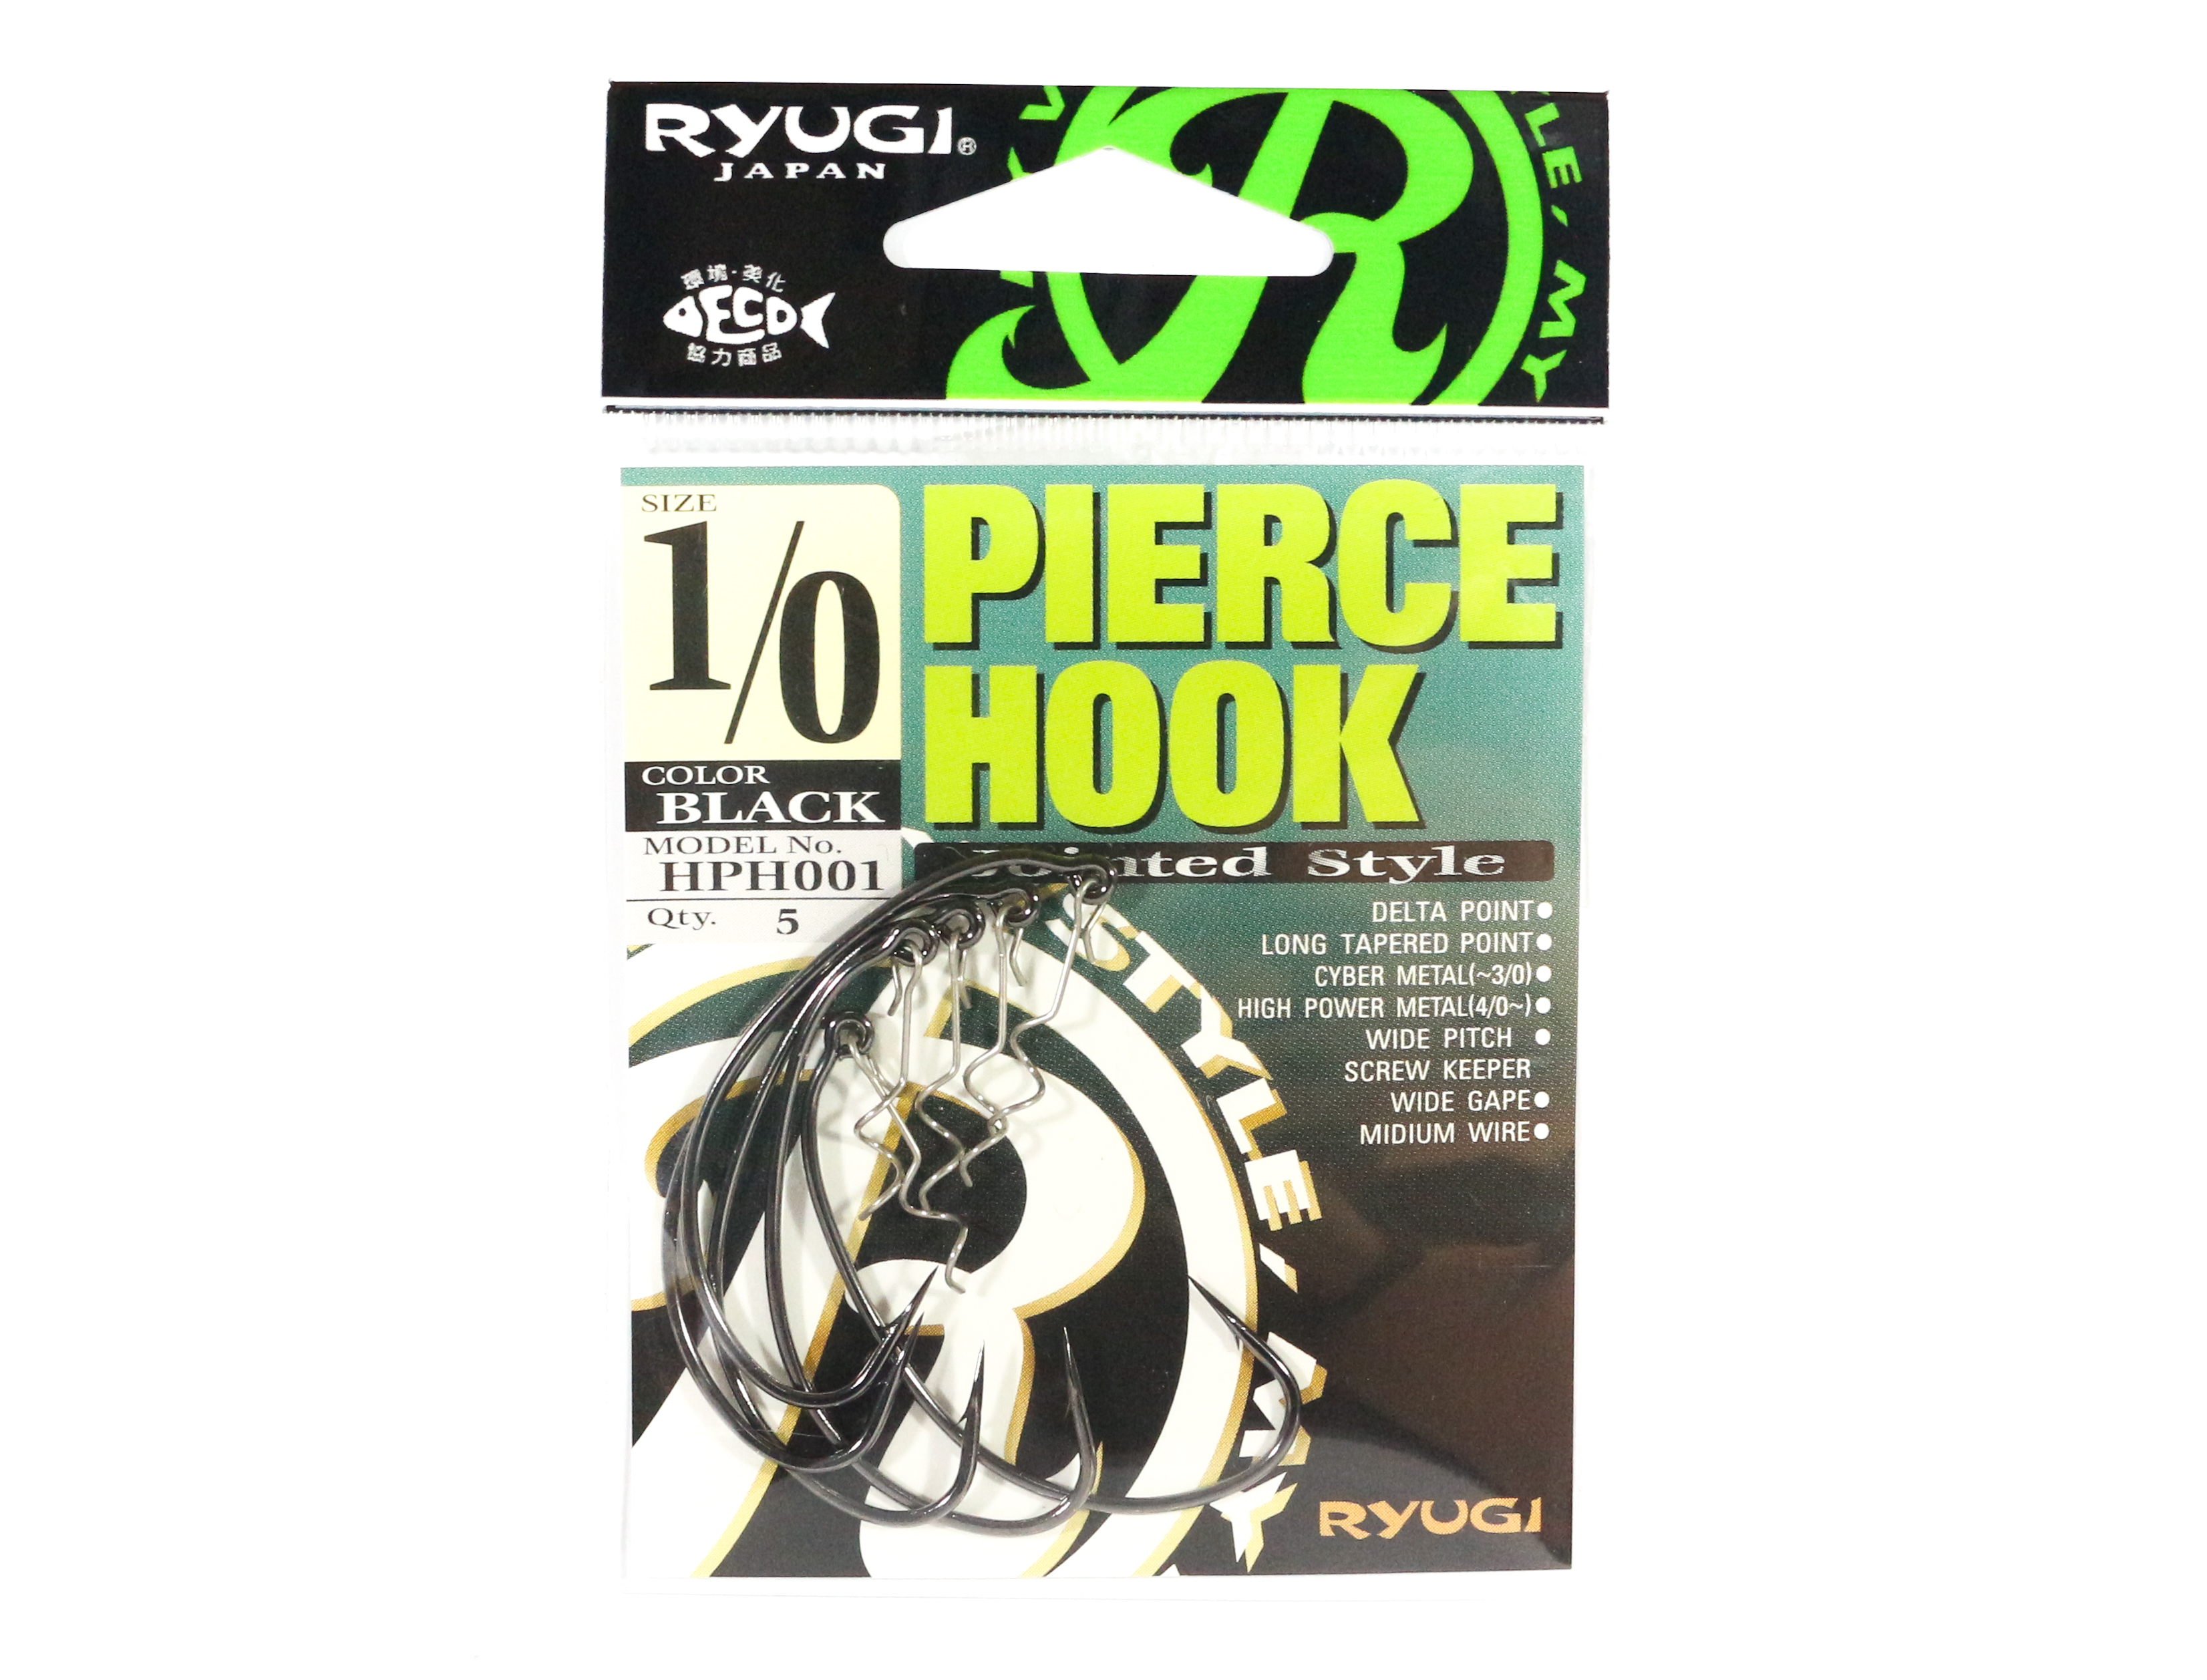 Ryugi HPH001 Pierce Hook Wide Gap Screw Keeper Size 1/0 (0577)